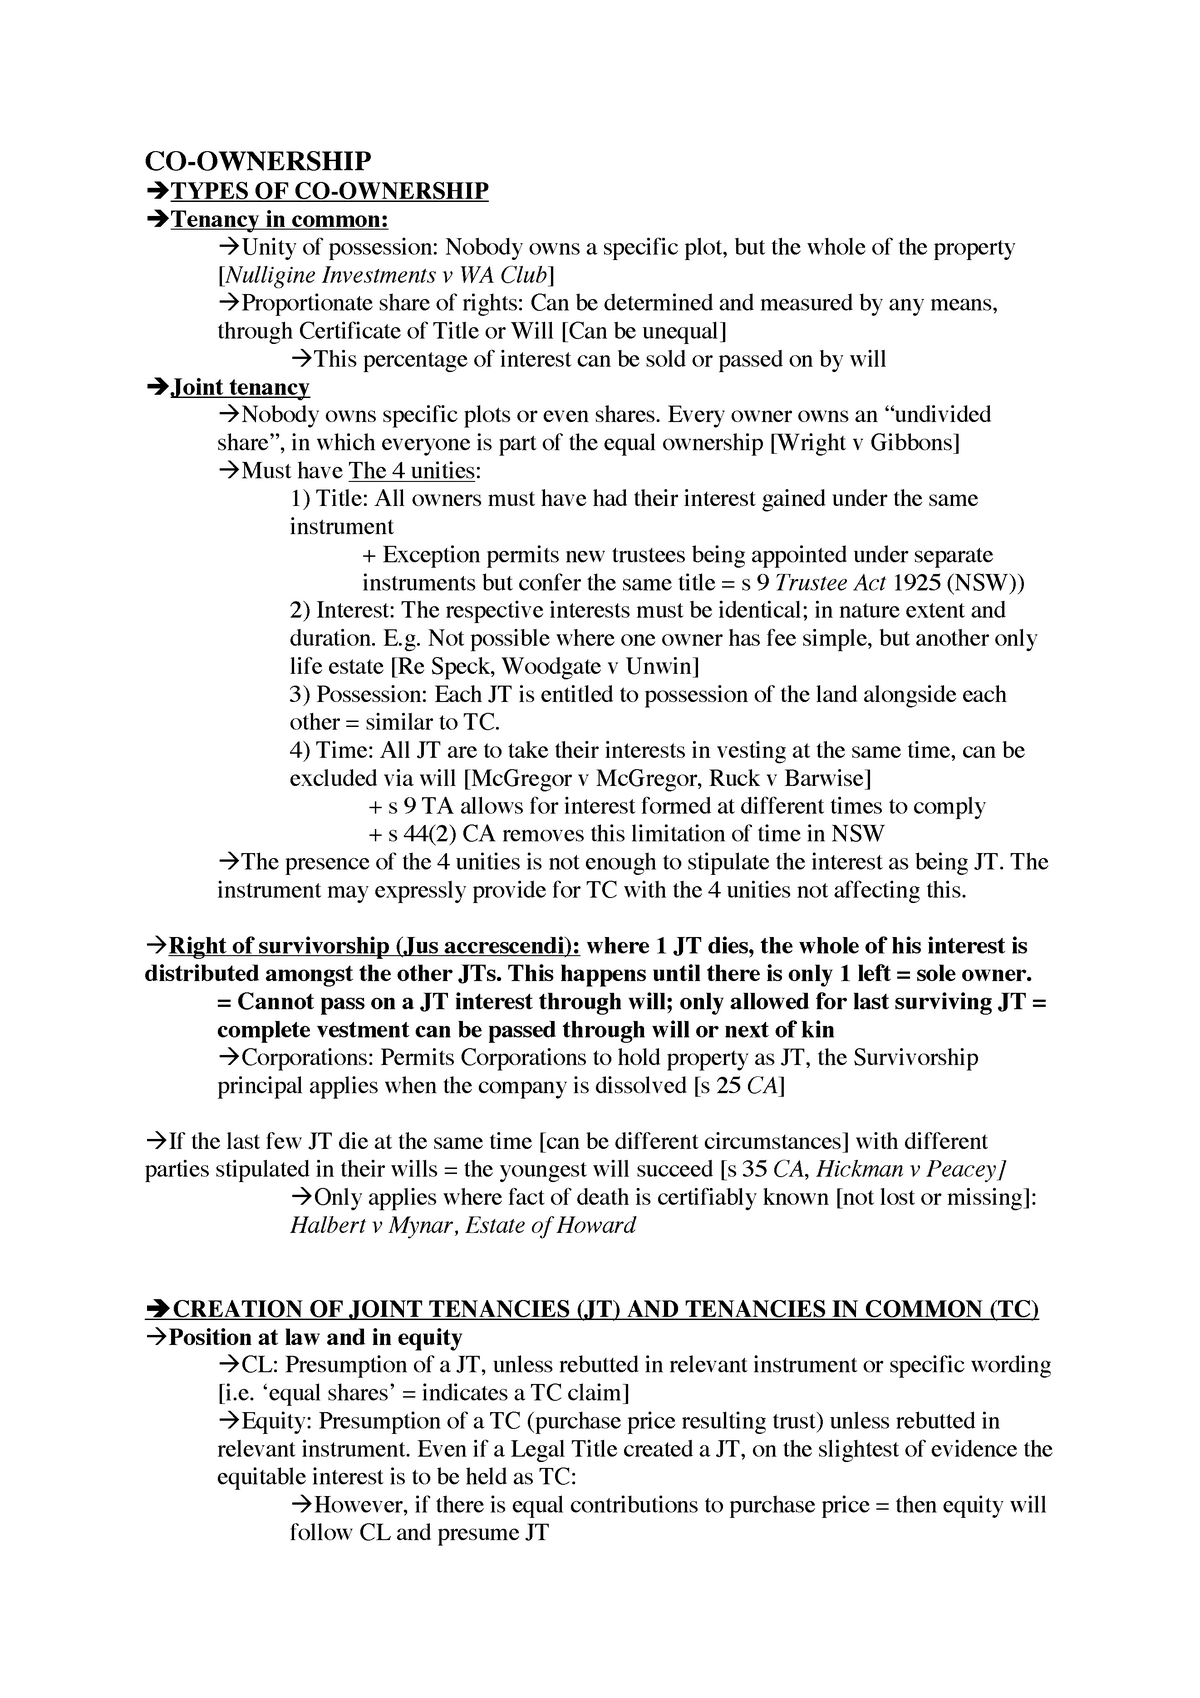 Summary of Co-Ownership - LLB 270 Property and Trusts B